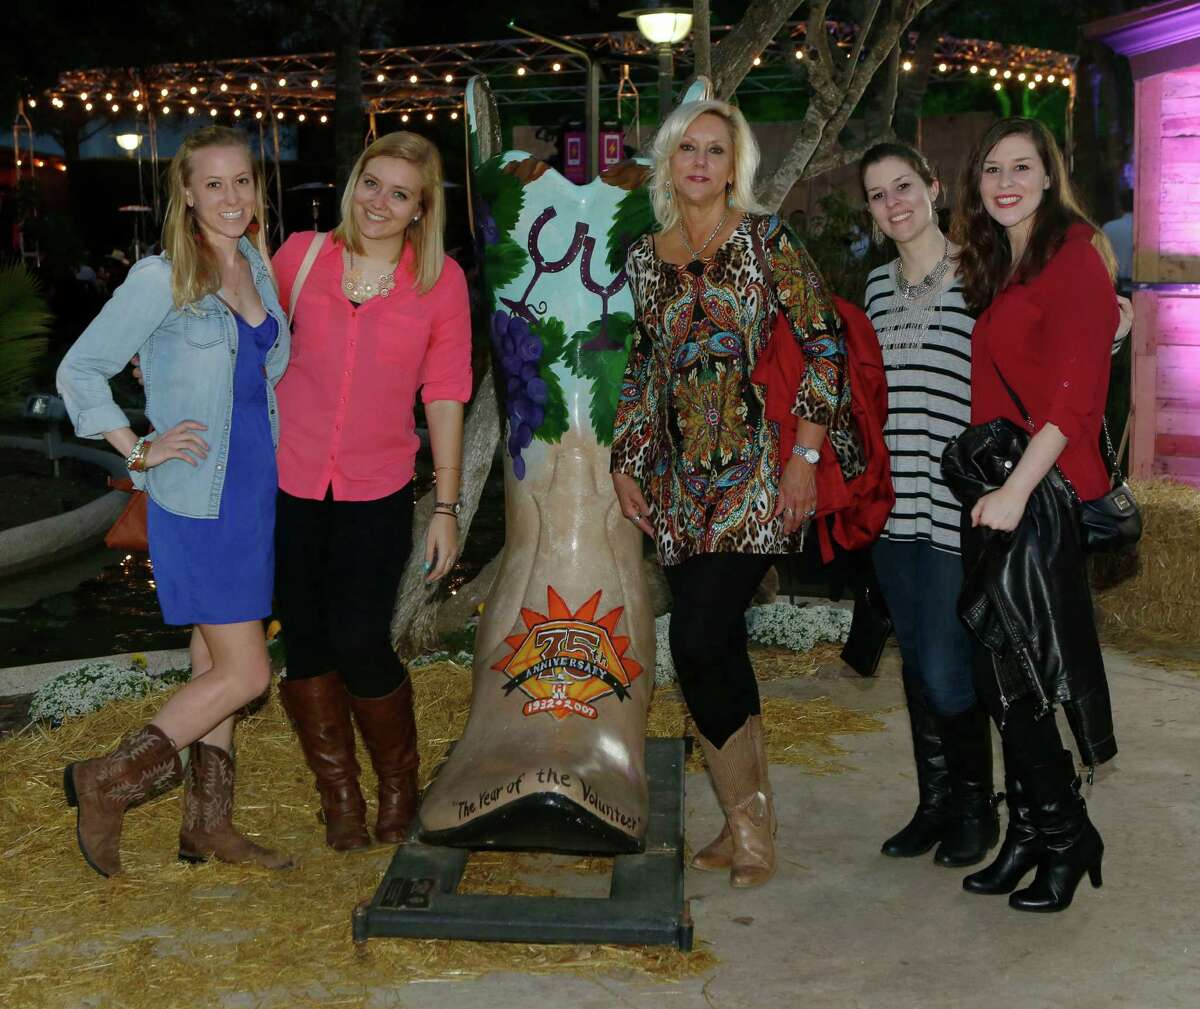 Guests pose for a photo before the Hunter Hayes concert at the Houston Livestock Show and Rodeo Wednesday, March 4, 2015, in Houston.